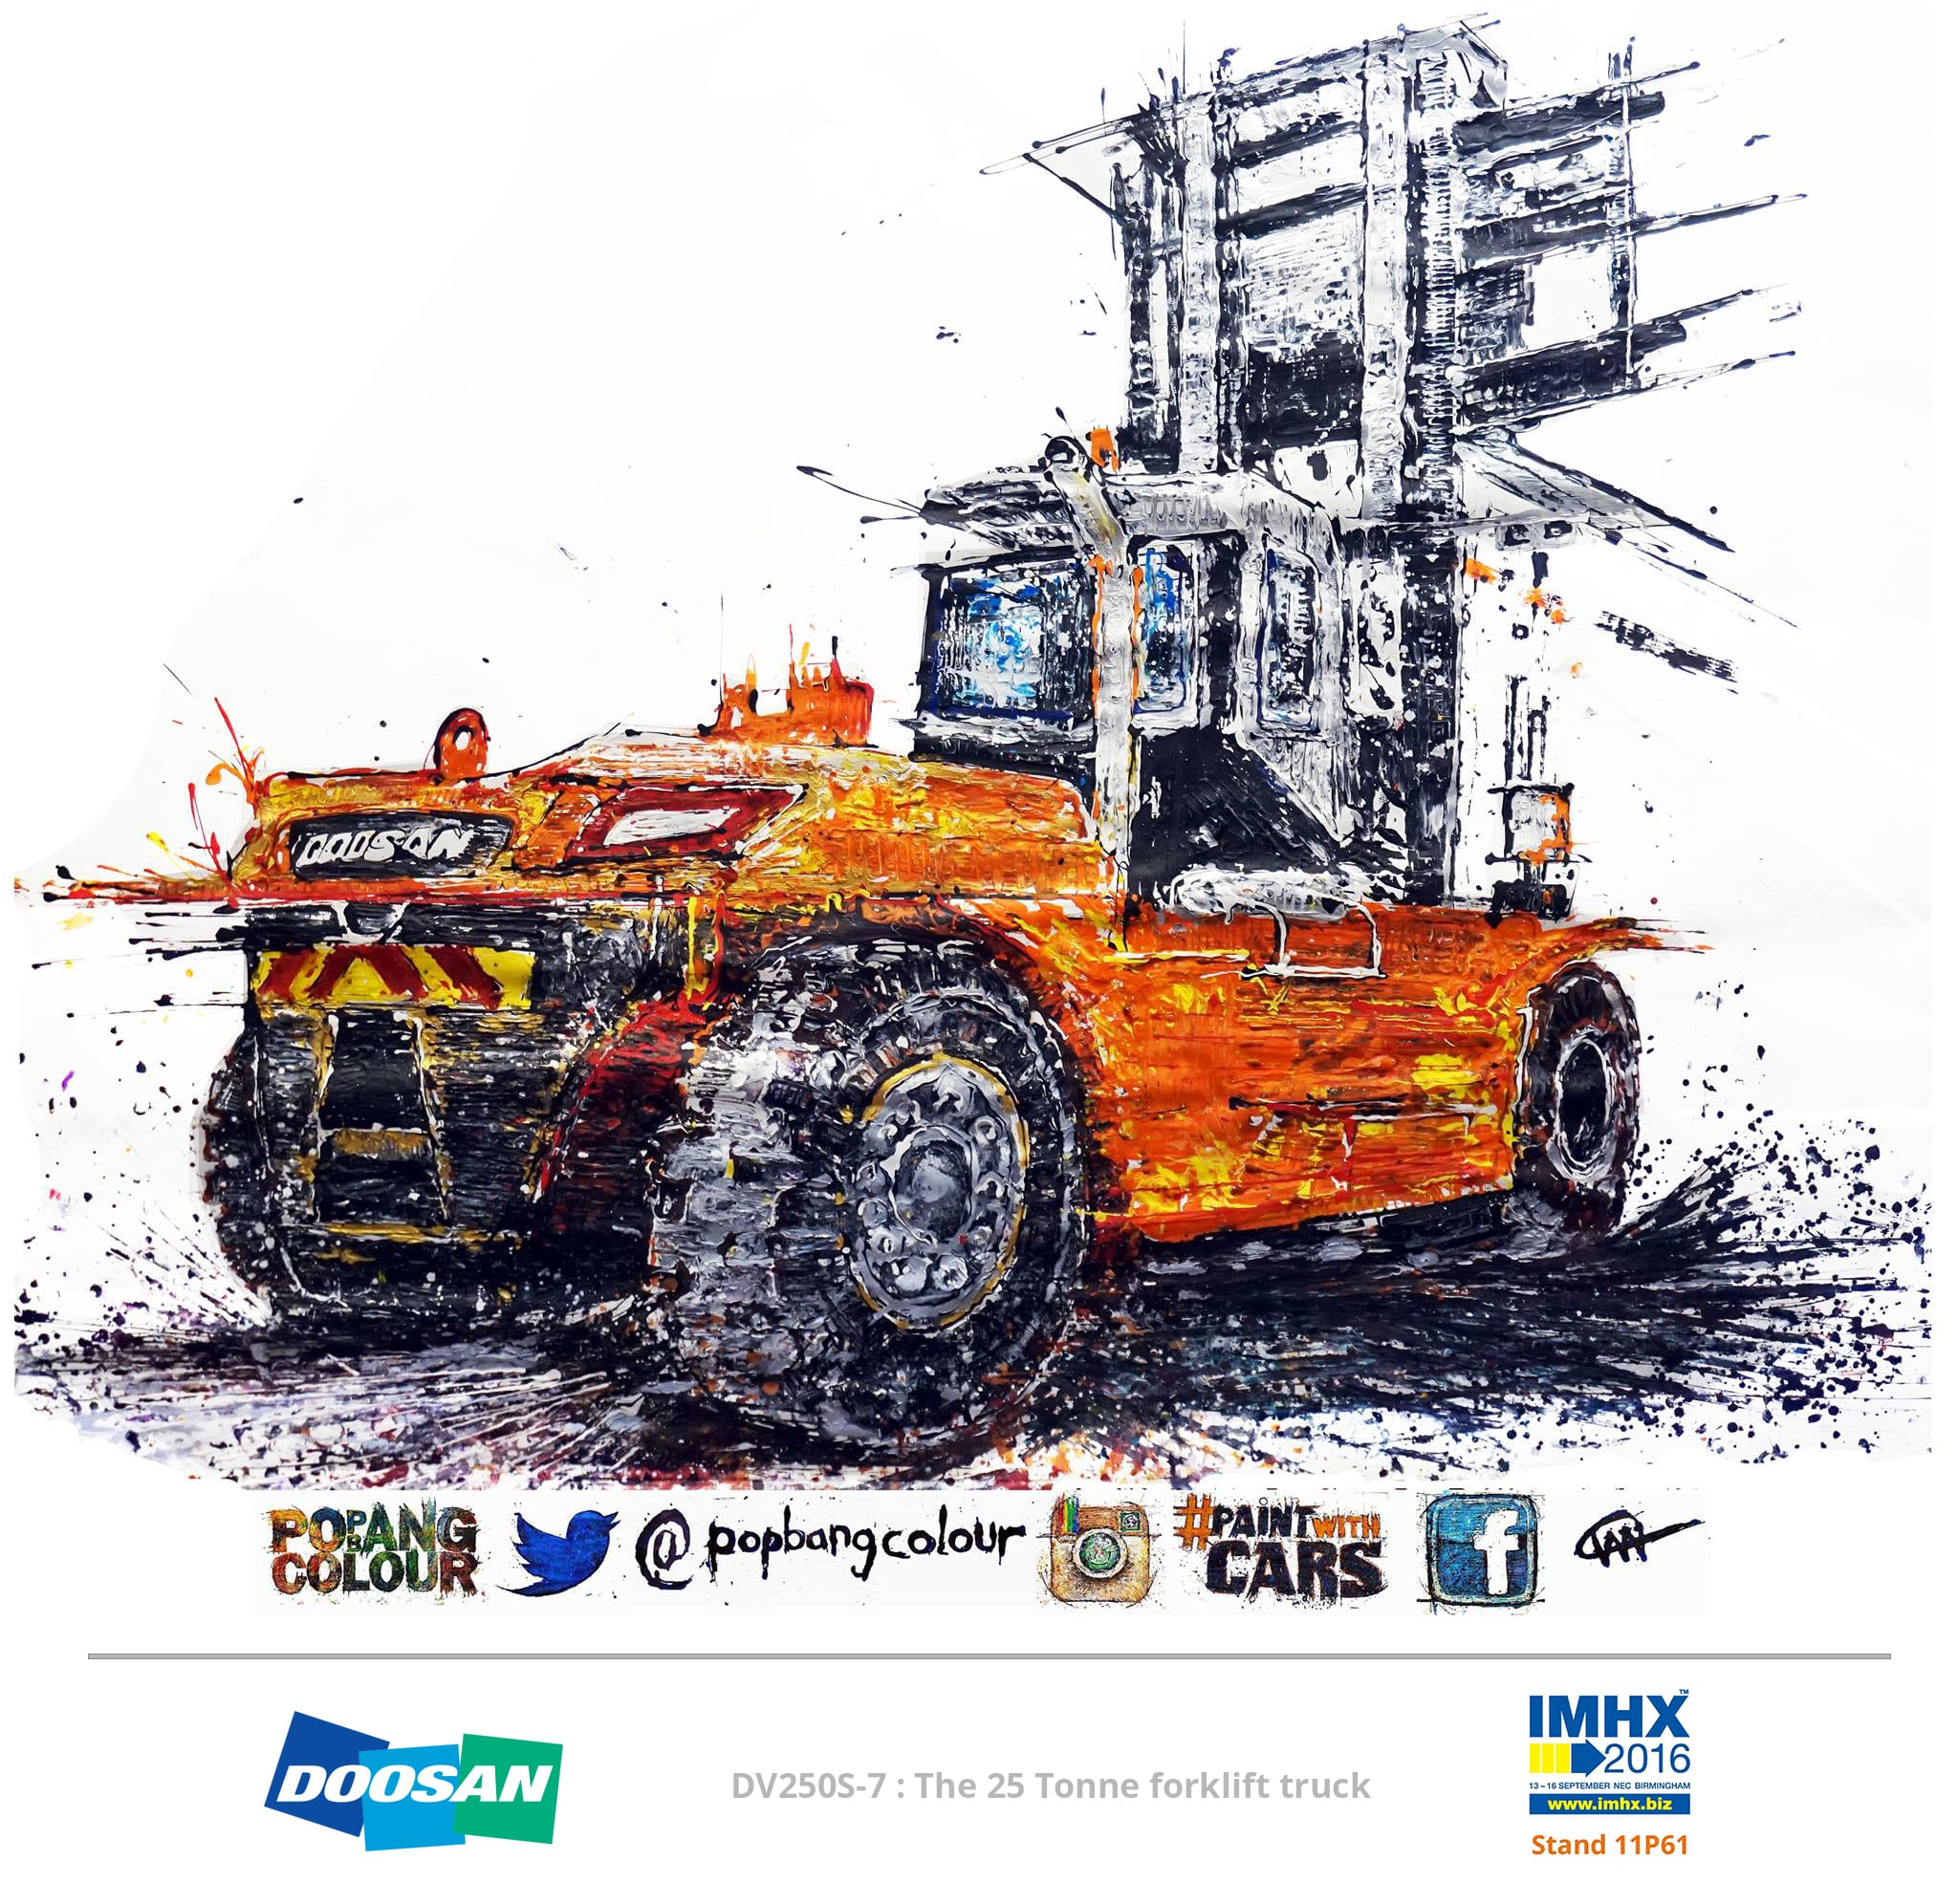 Visit IMHX to experience Doosan – the best of both worlds